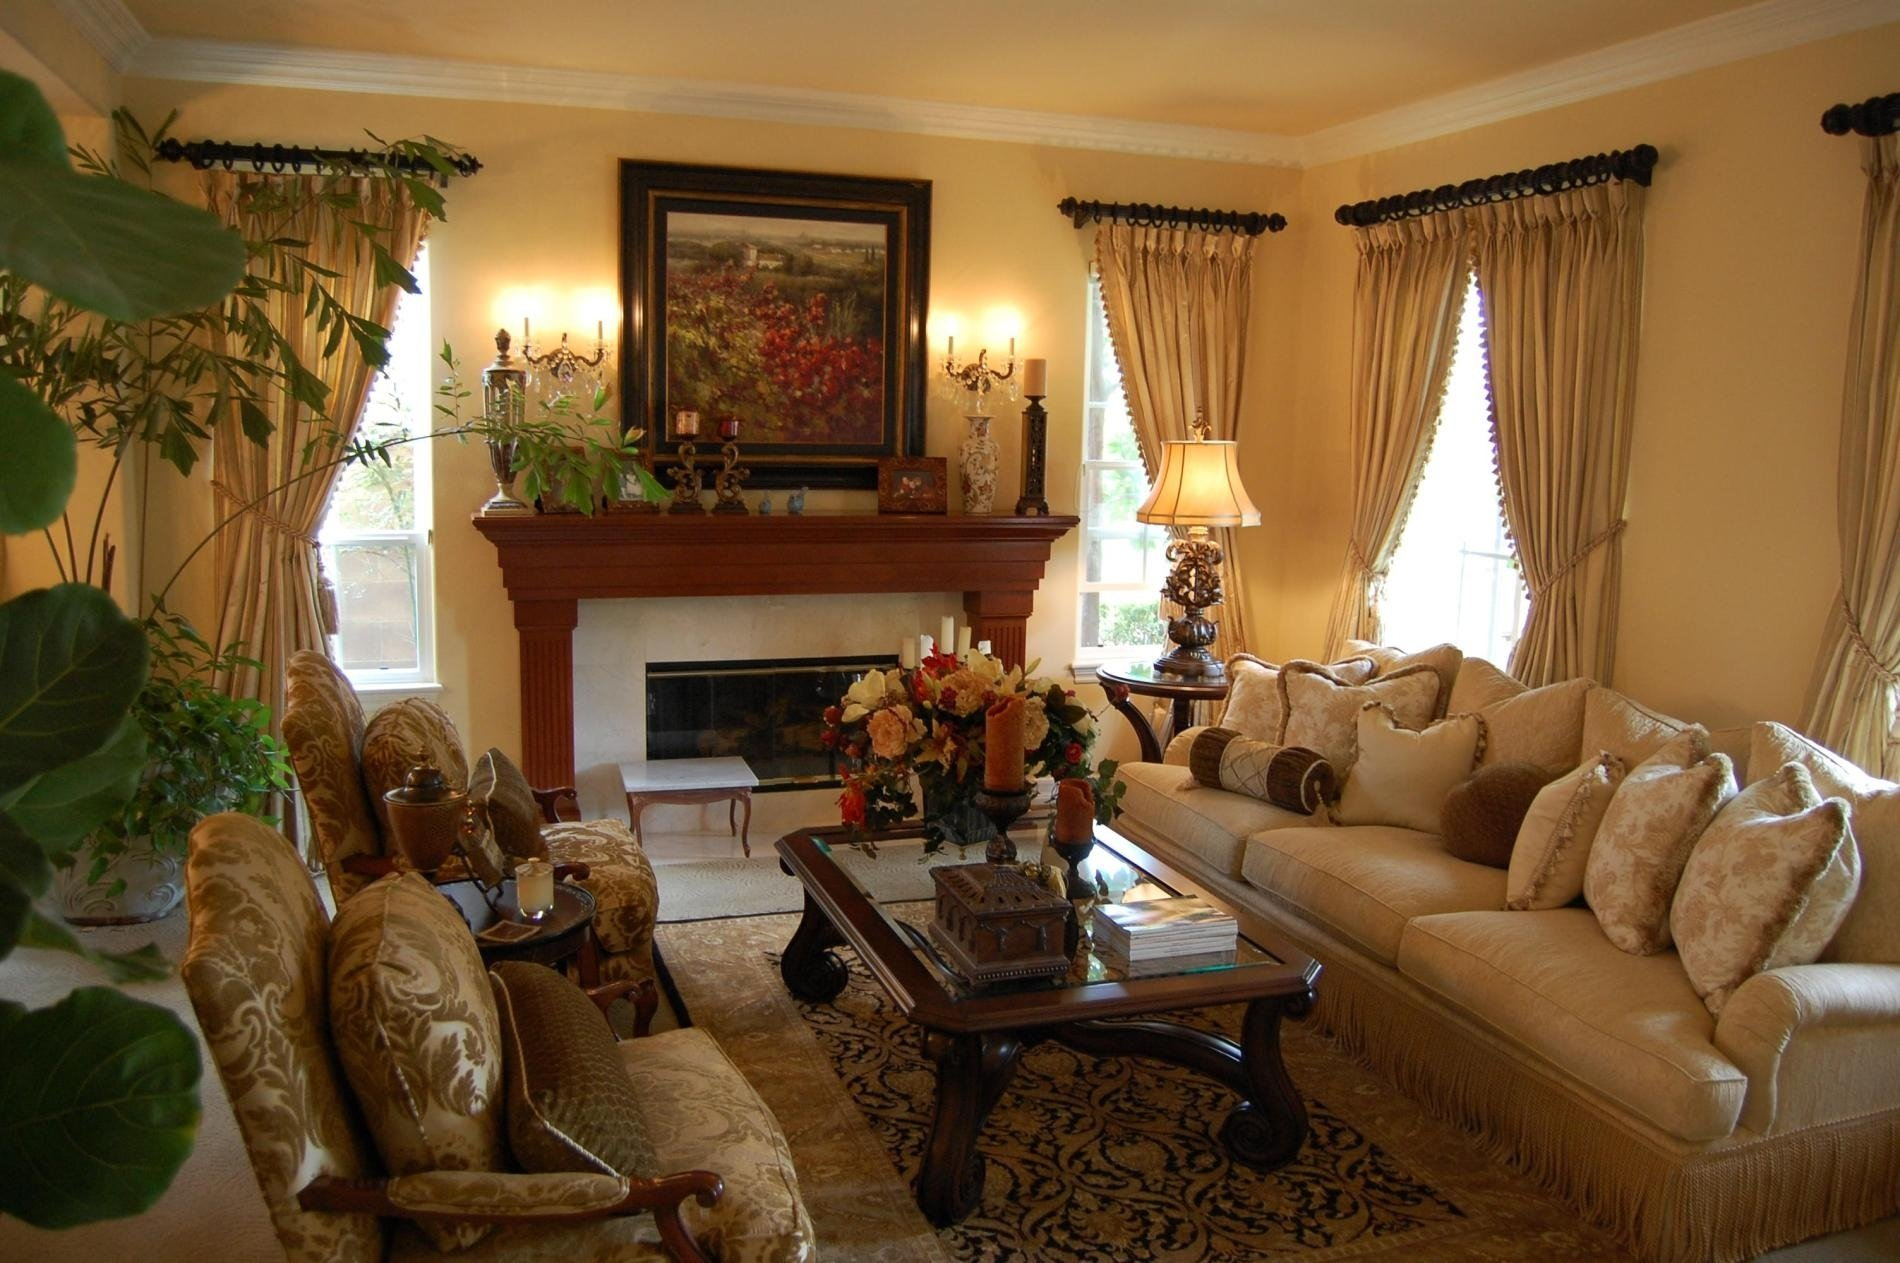 10 Fantastic Living Room Decorating Ideas Traditional traditional living room decobizz 1 2021